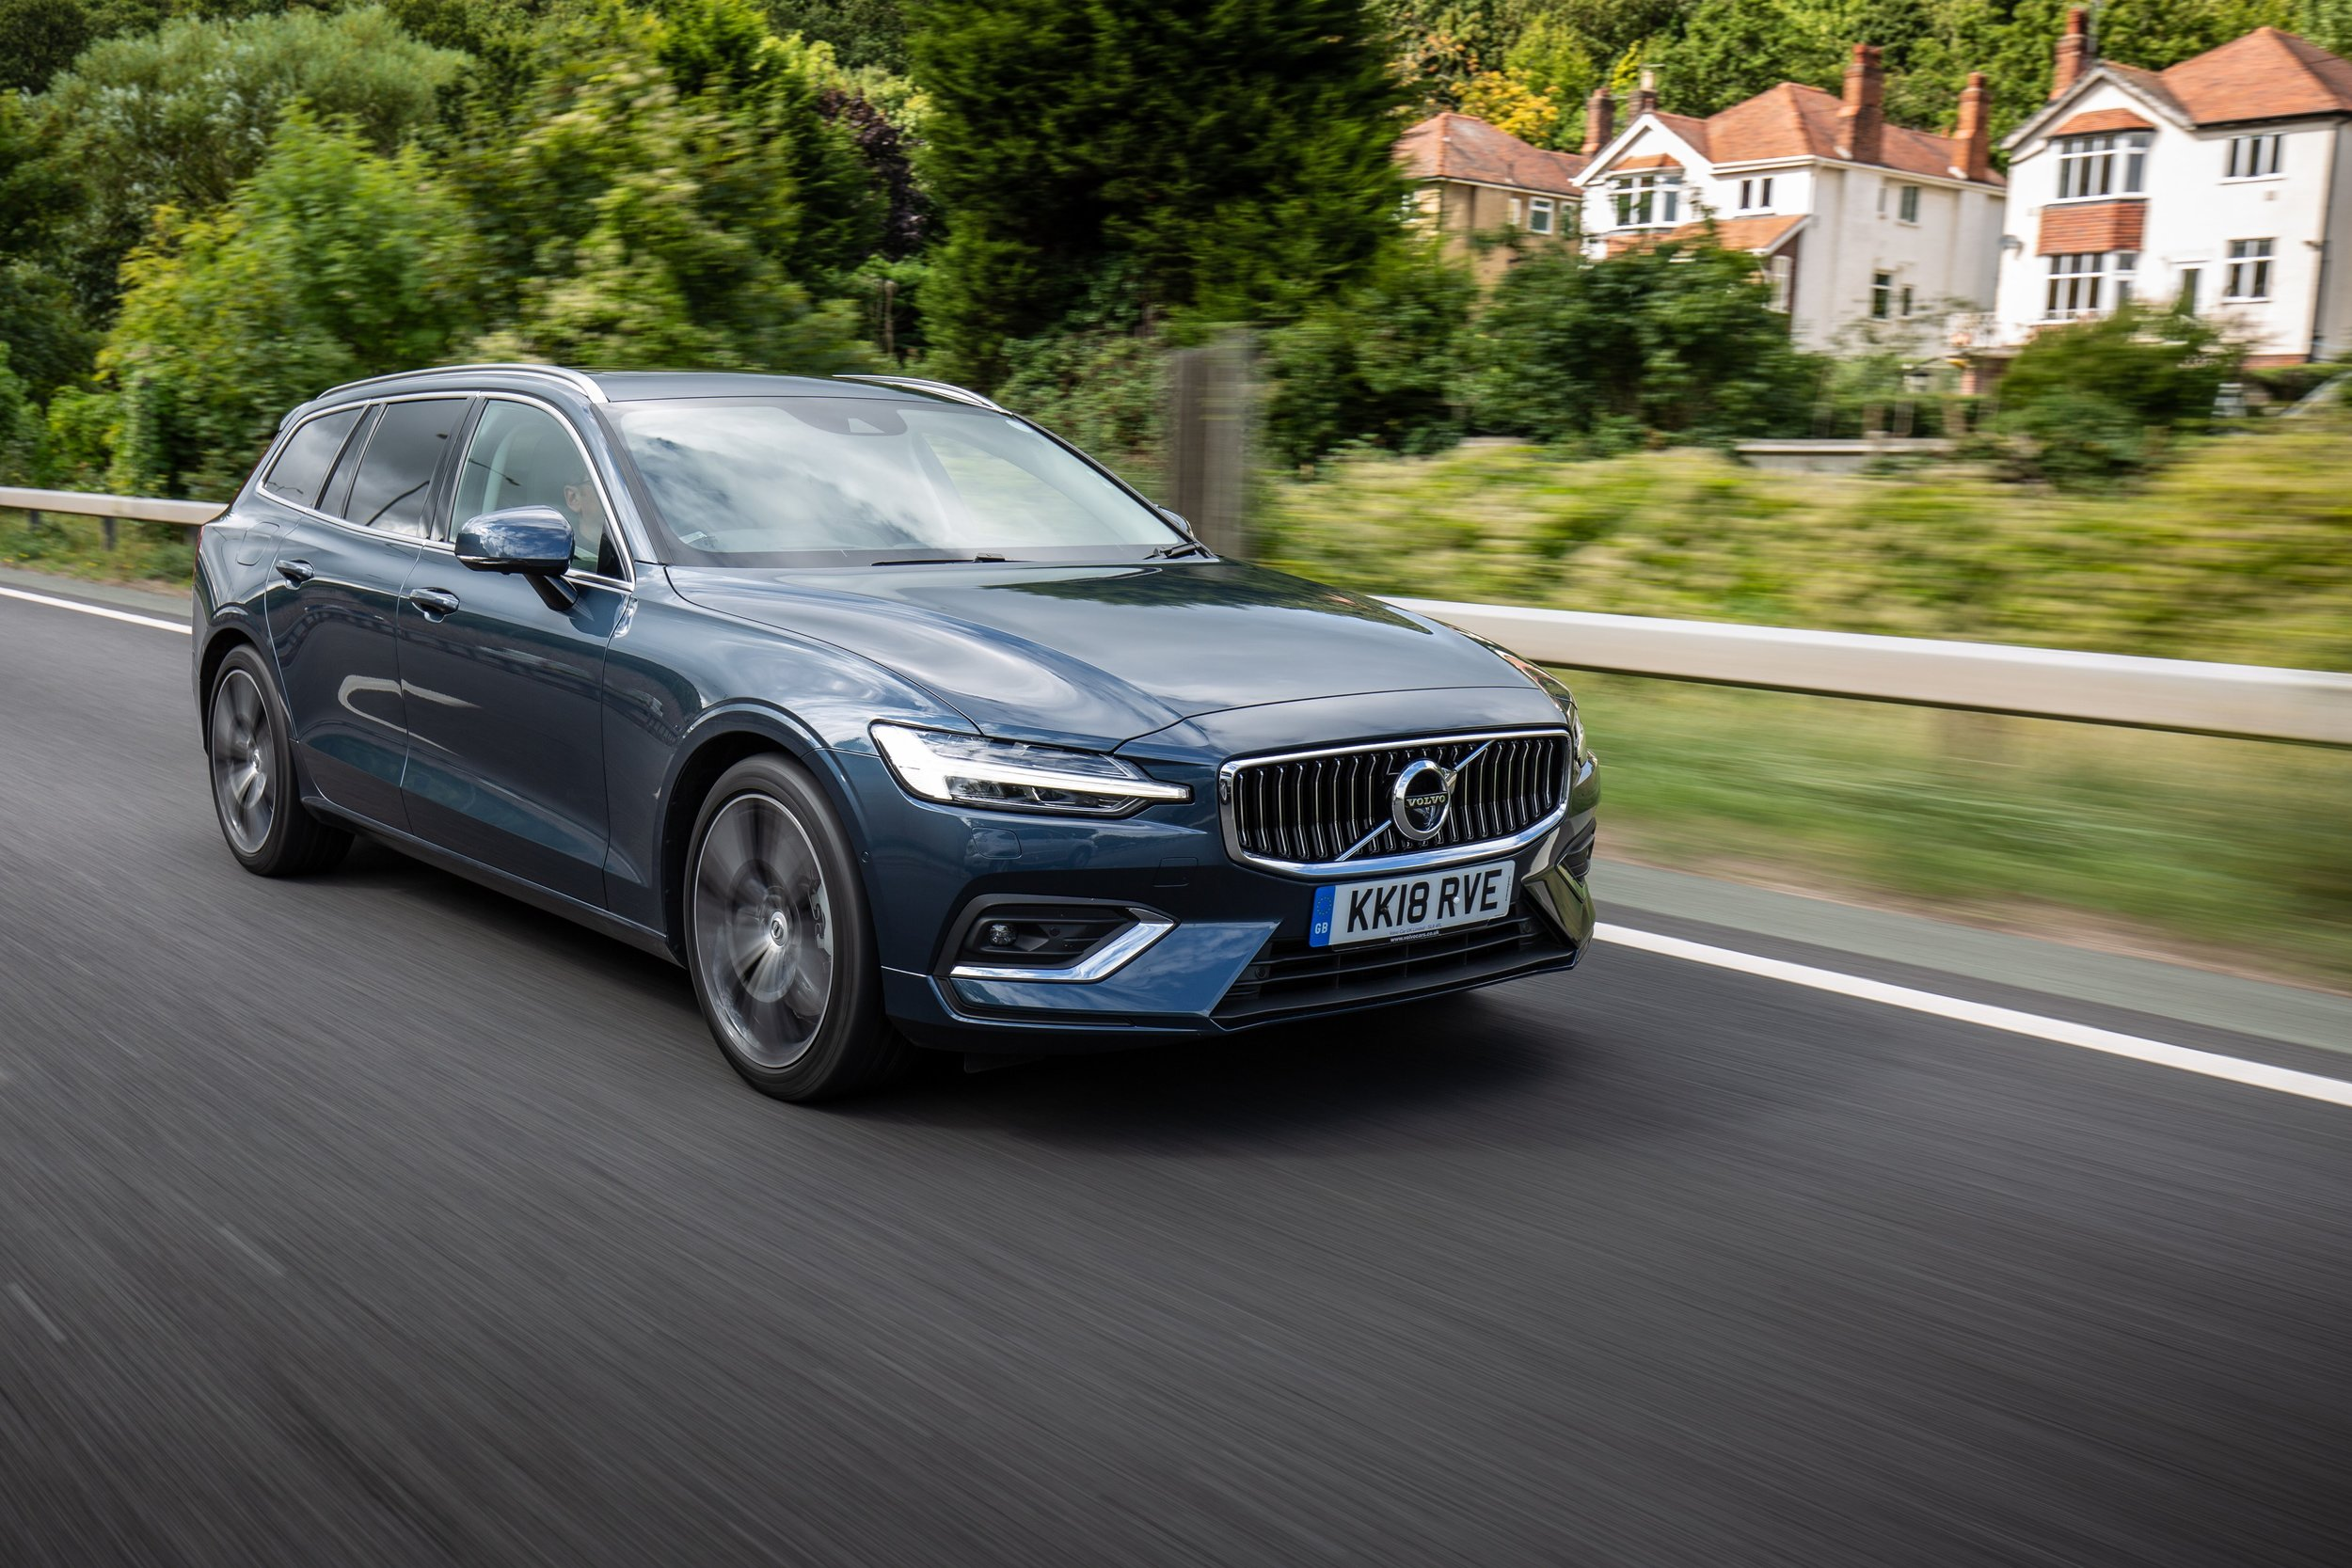 volvo-v60-regalmotion-regalautolease-10.jpg